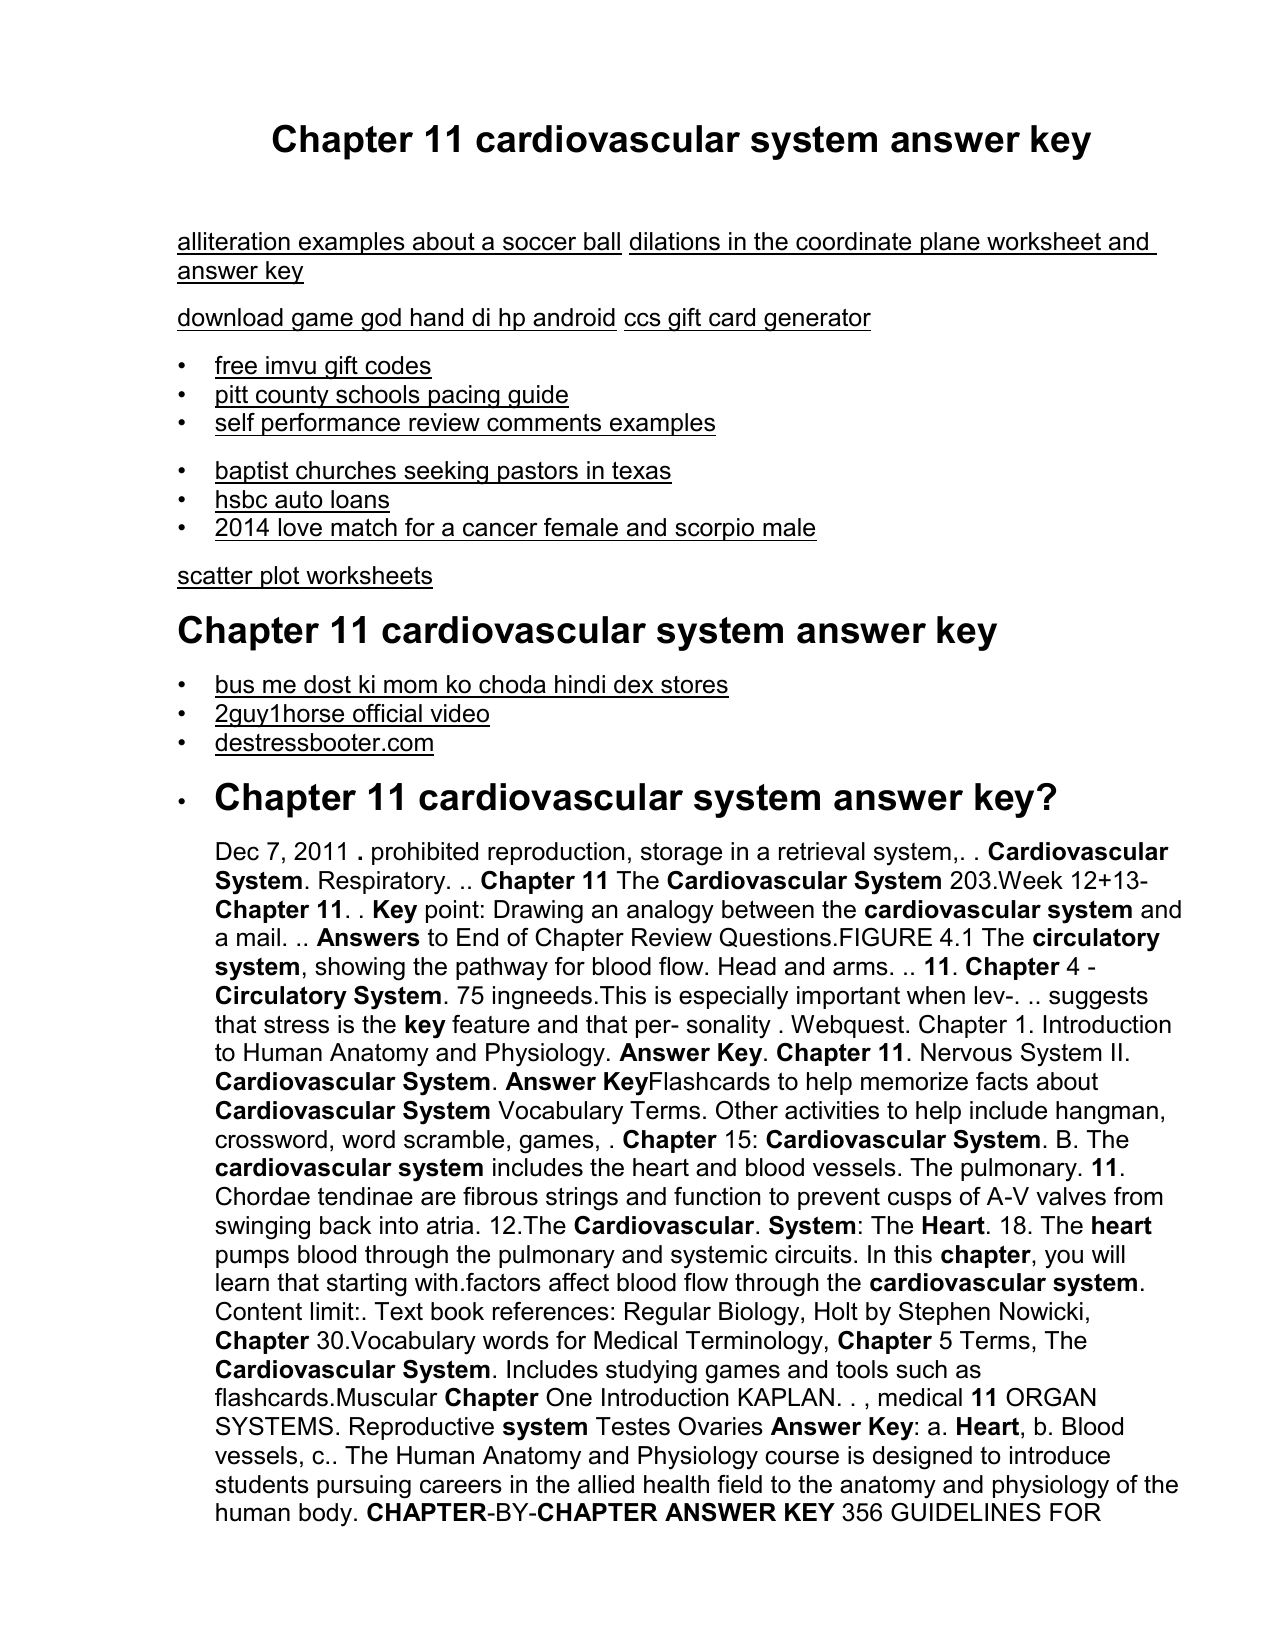 Anatomy And Physiology Chapter 1 Test Answer Key